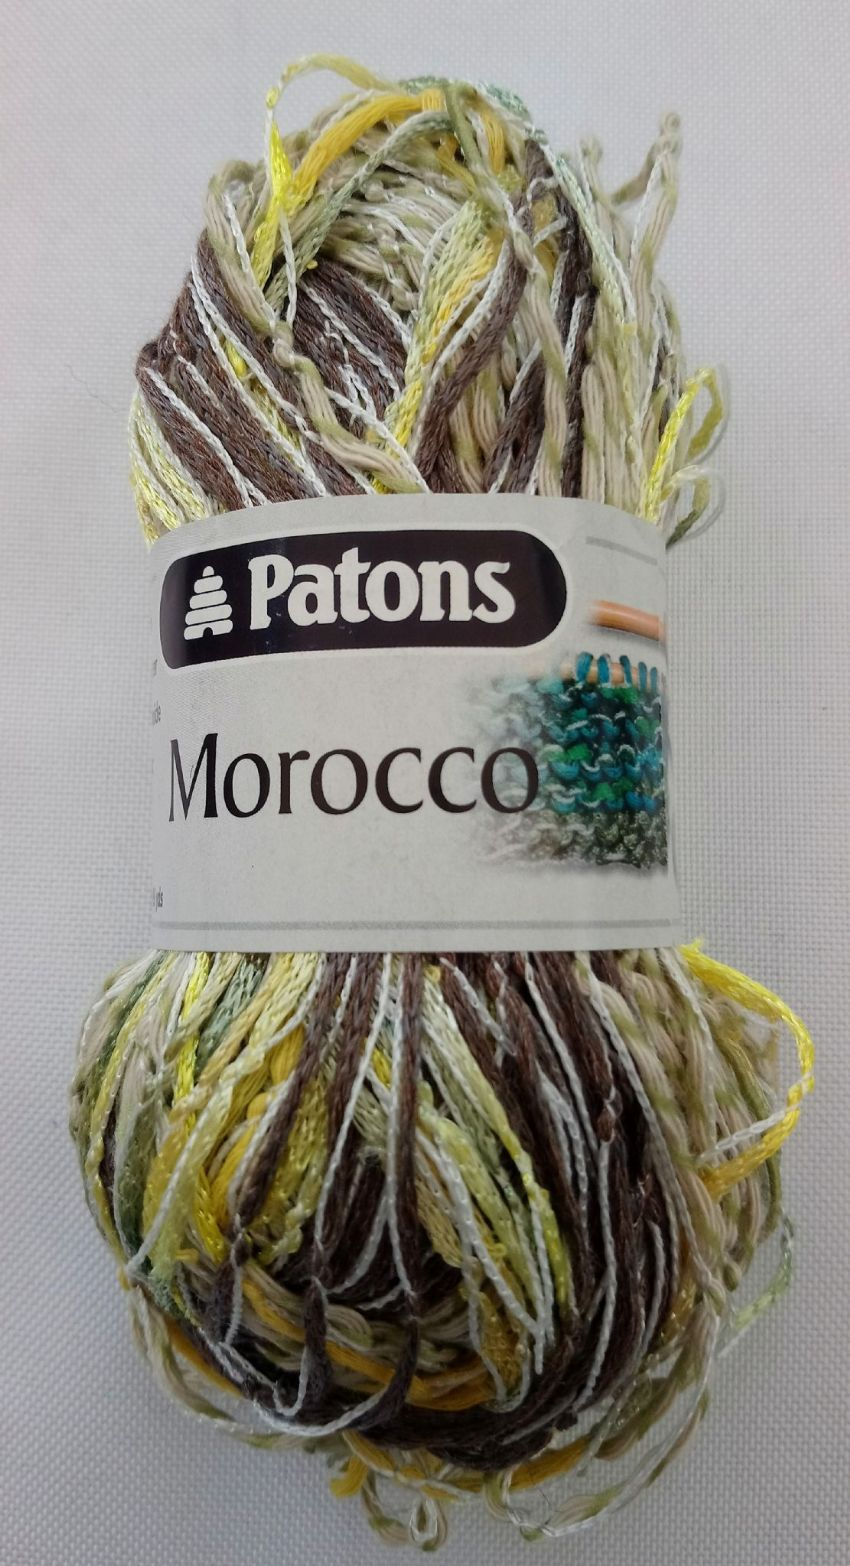 Patons Morocco Brown/Linen/Yellow mix 50g